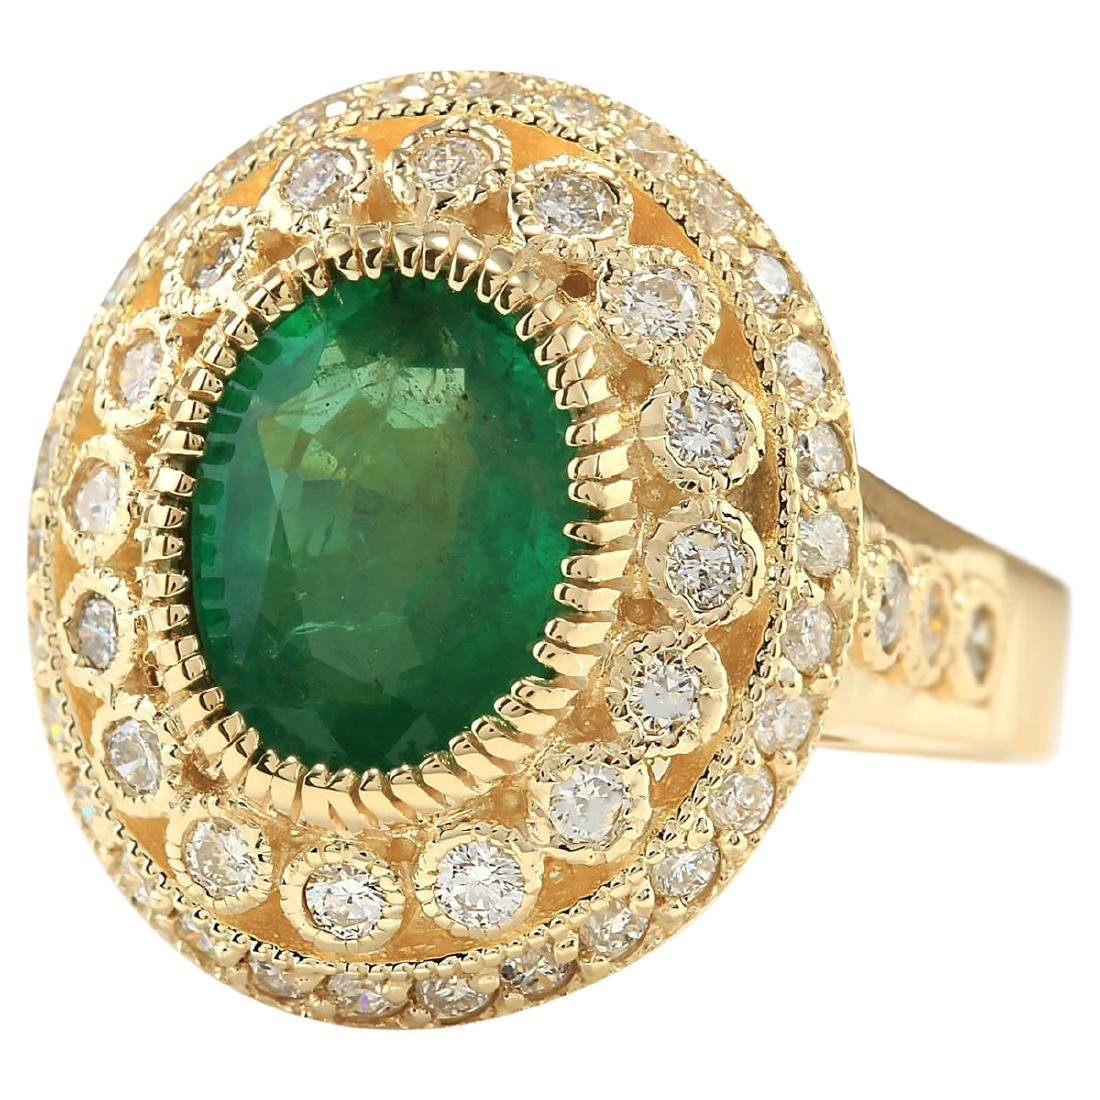 3.45 CTW Natural Emerald And Diamond Ring In 18K Yellow - 2